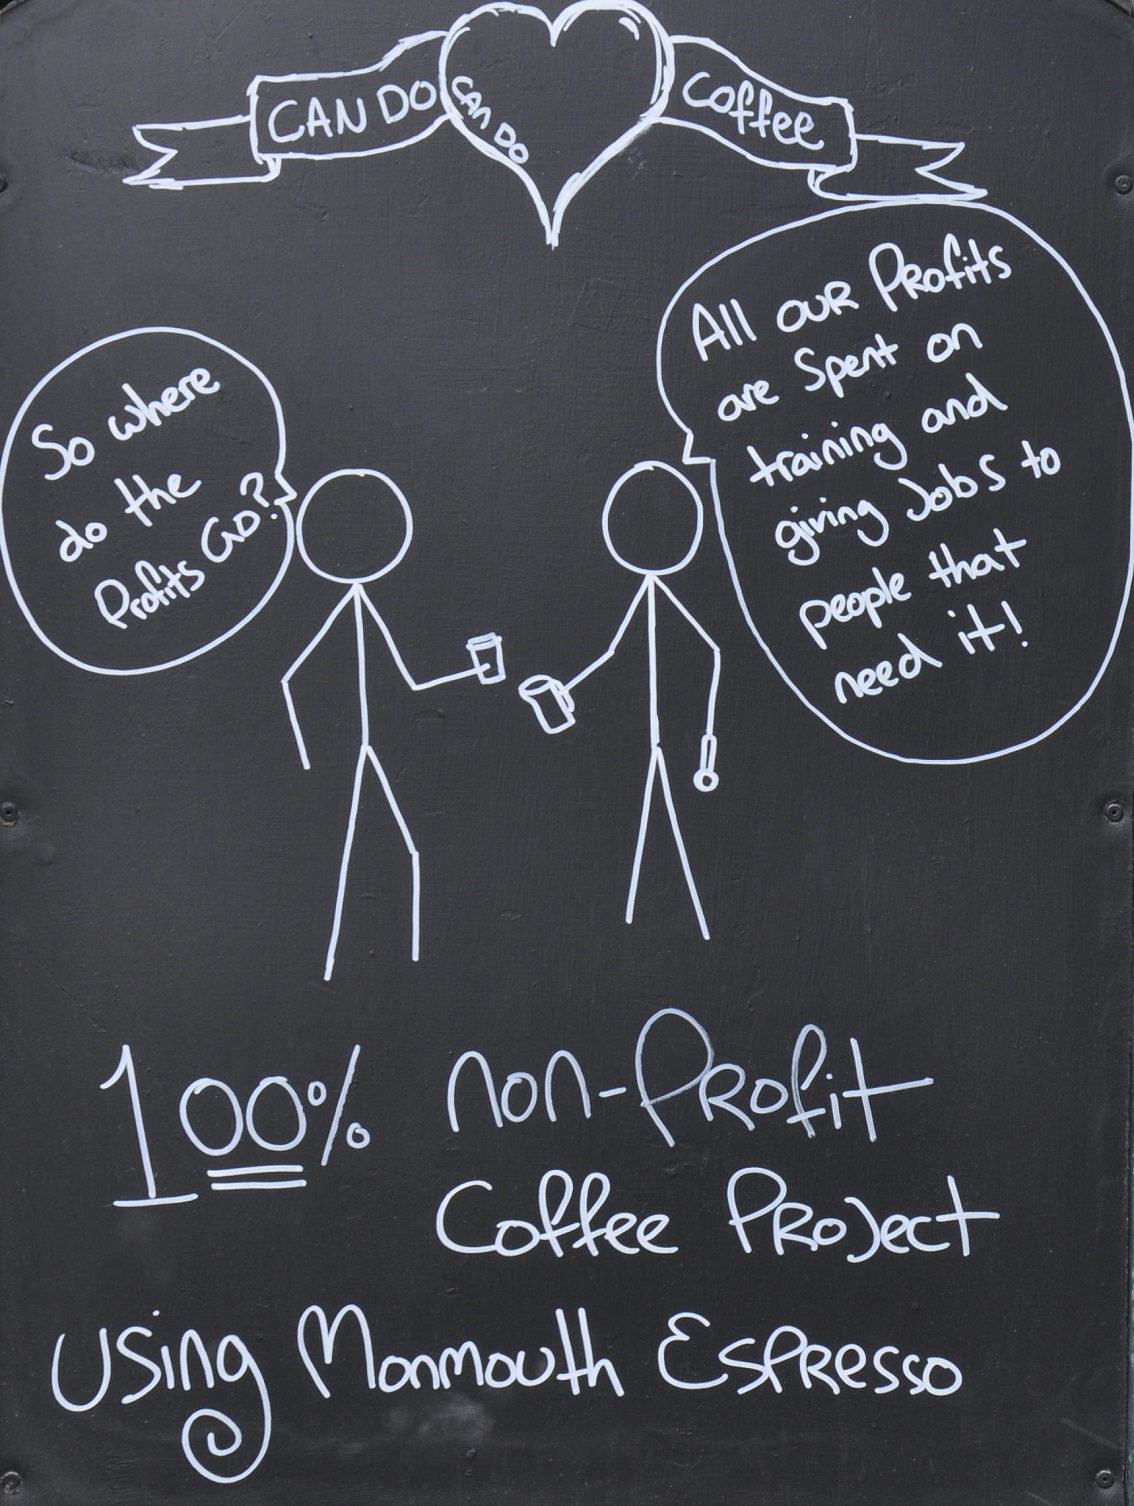 """An A-board showing two stick figures talking. The first asks """"So where do the profits go?"""" and the second answers """"All our profits are spent on training and giving jobs to people that need it!"""". Underneath it says """"100% non-profit coffee project using Monmouth espresso""""."""